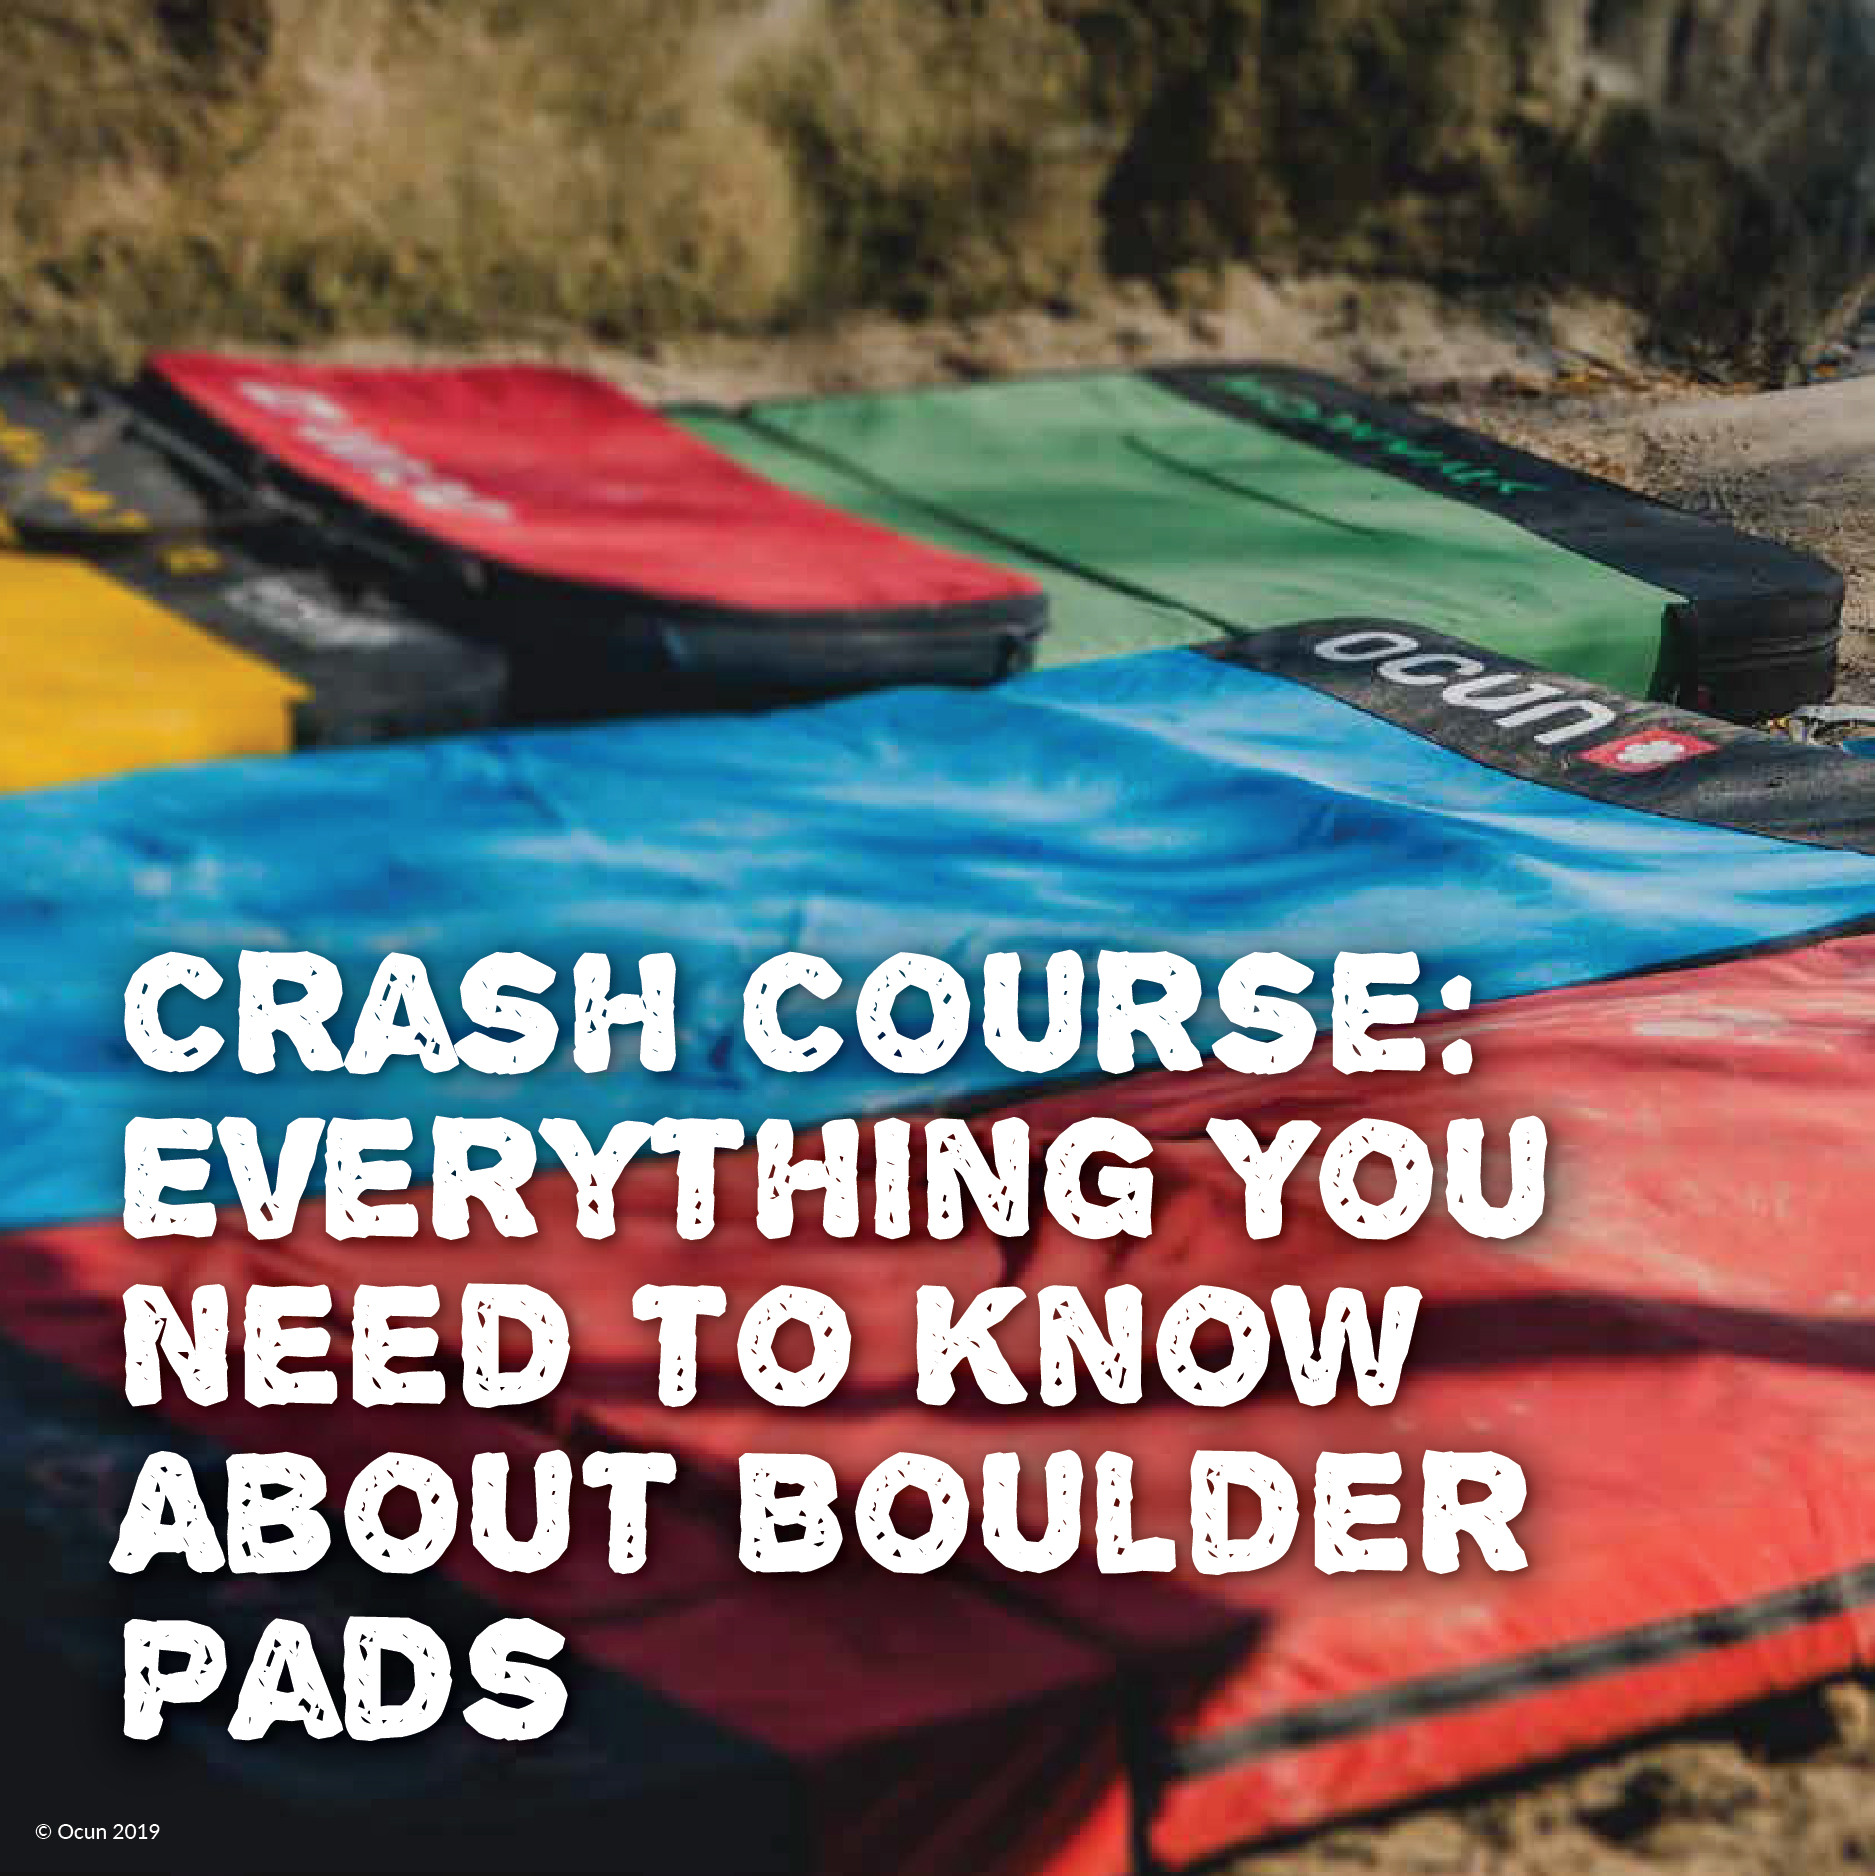 Crash Course: Everything You Need to Know About Boulder Pads